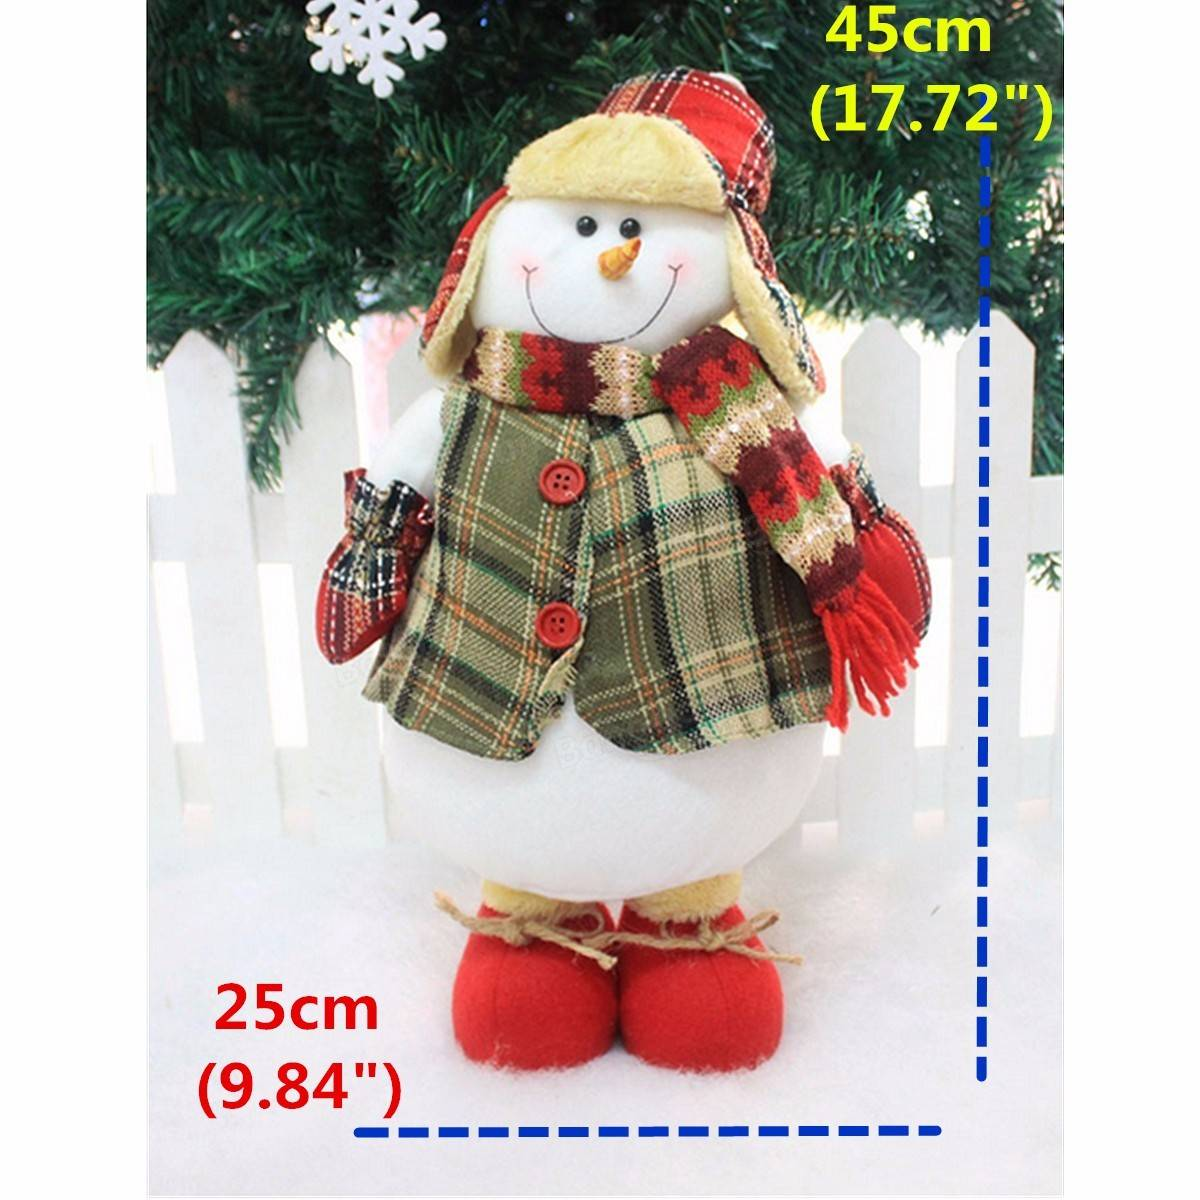 Large Xmas Christmas Santa Clau Snowman Ornament Christmas Tree Desk Ornament - 4